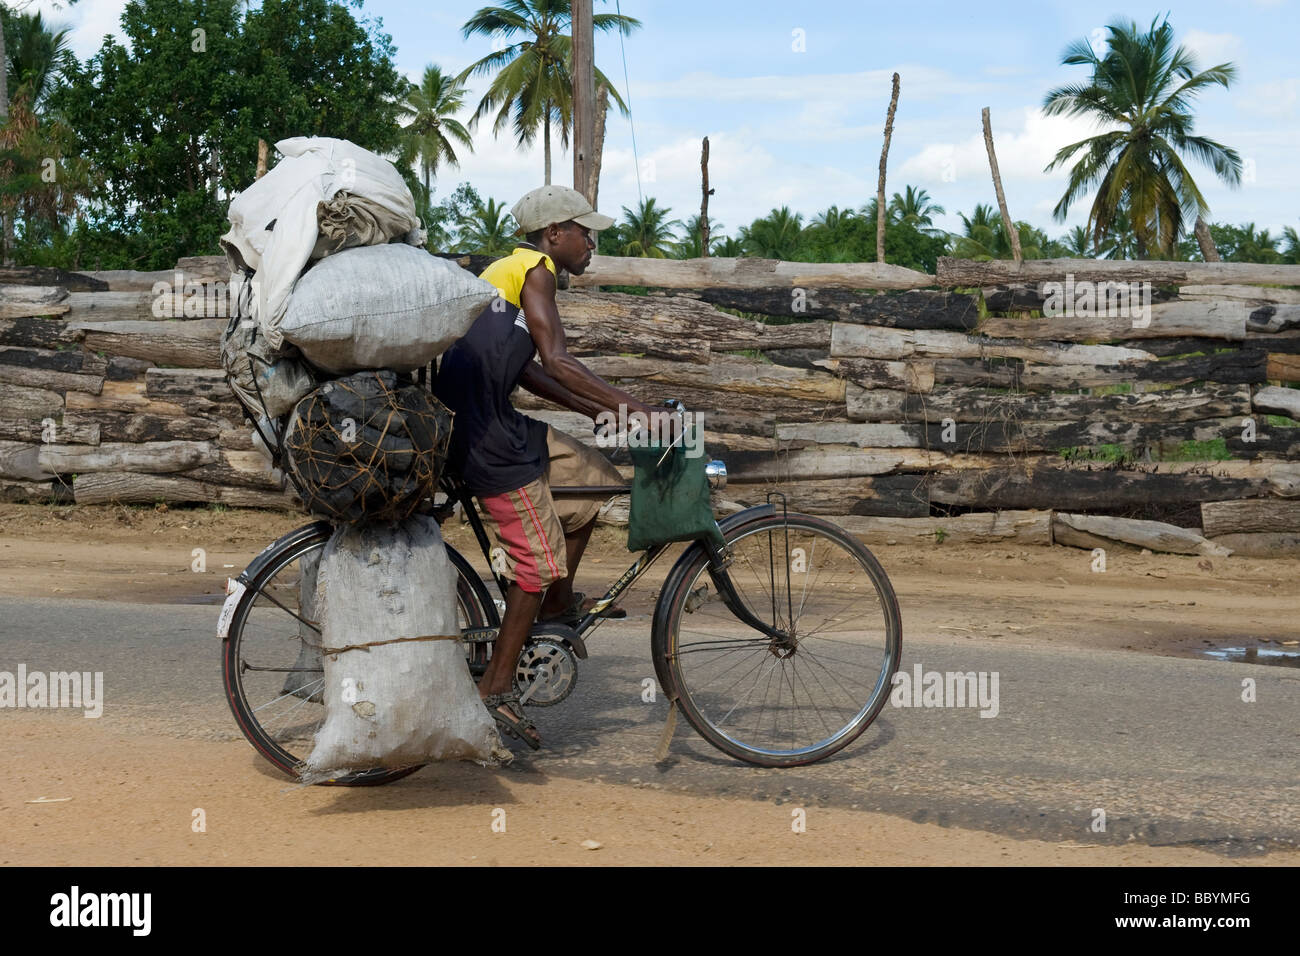 A man carrying bags with charcoal on his bicycle Quelimane Mozambique - Stock Image